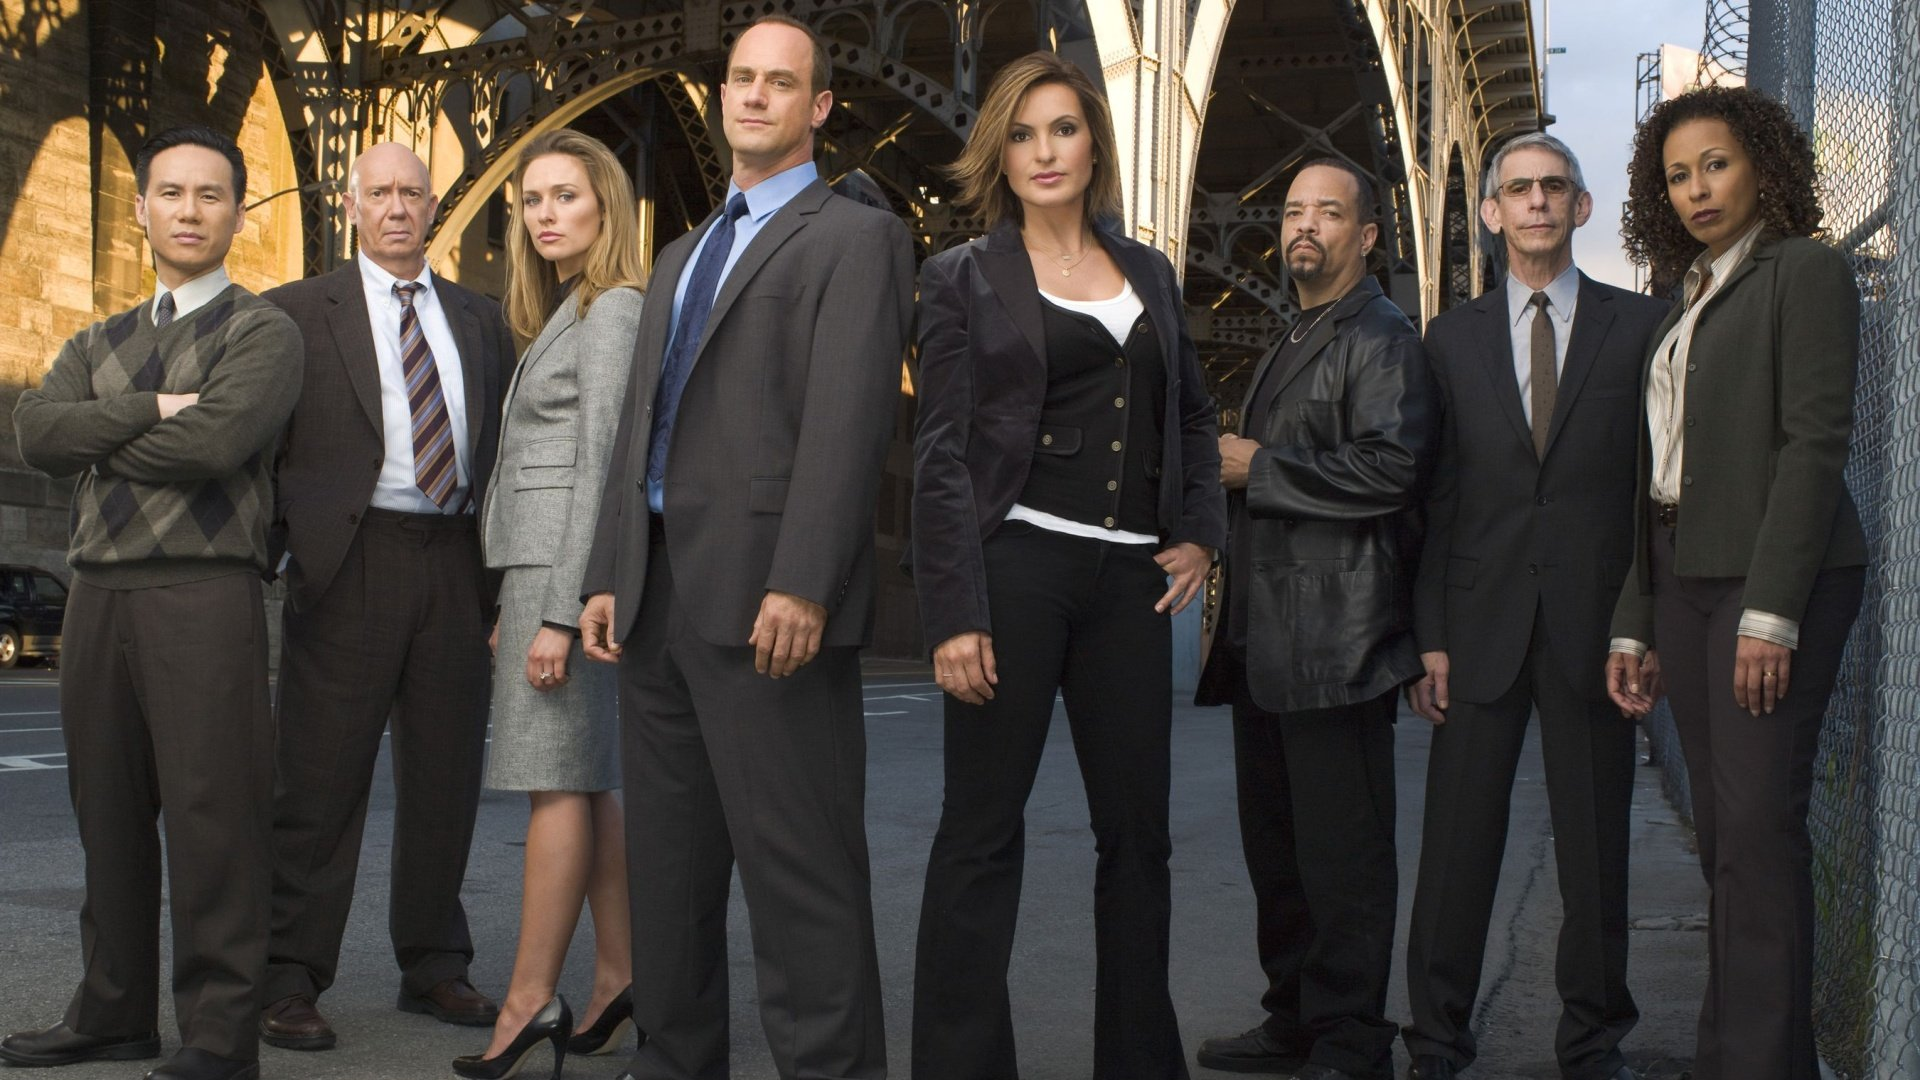 Law & Order: Special Victims Unit: Undercover Blue